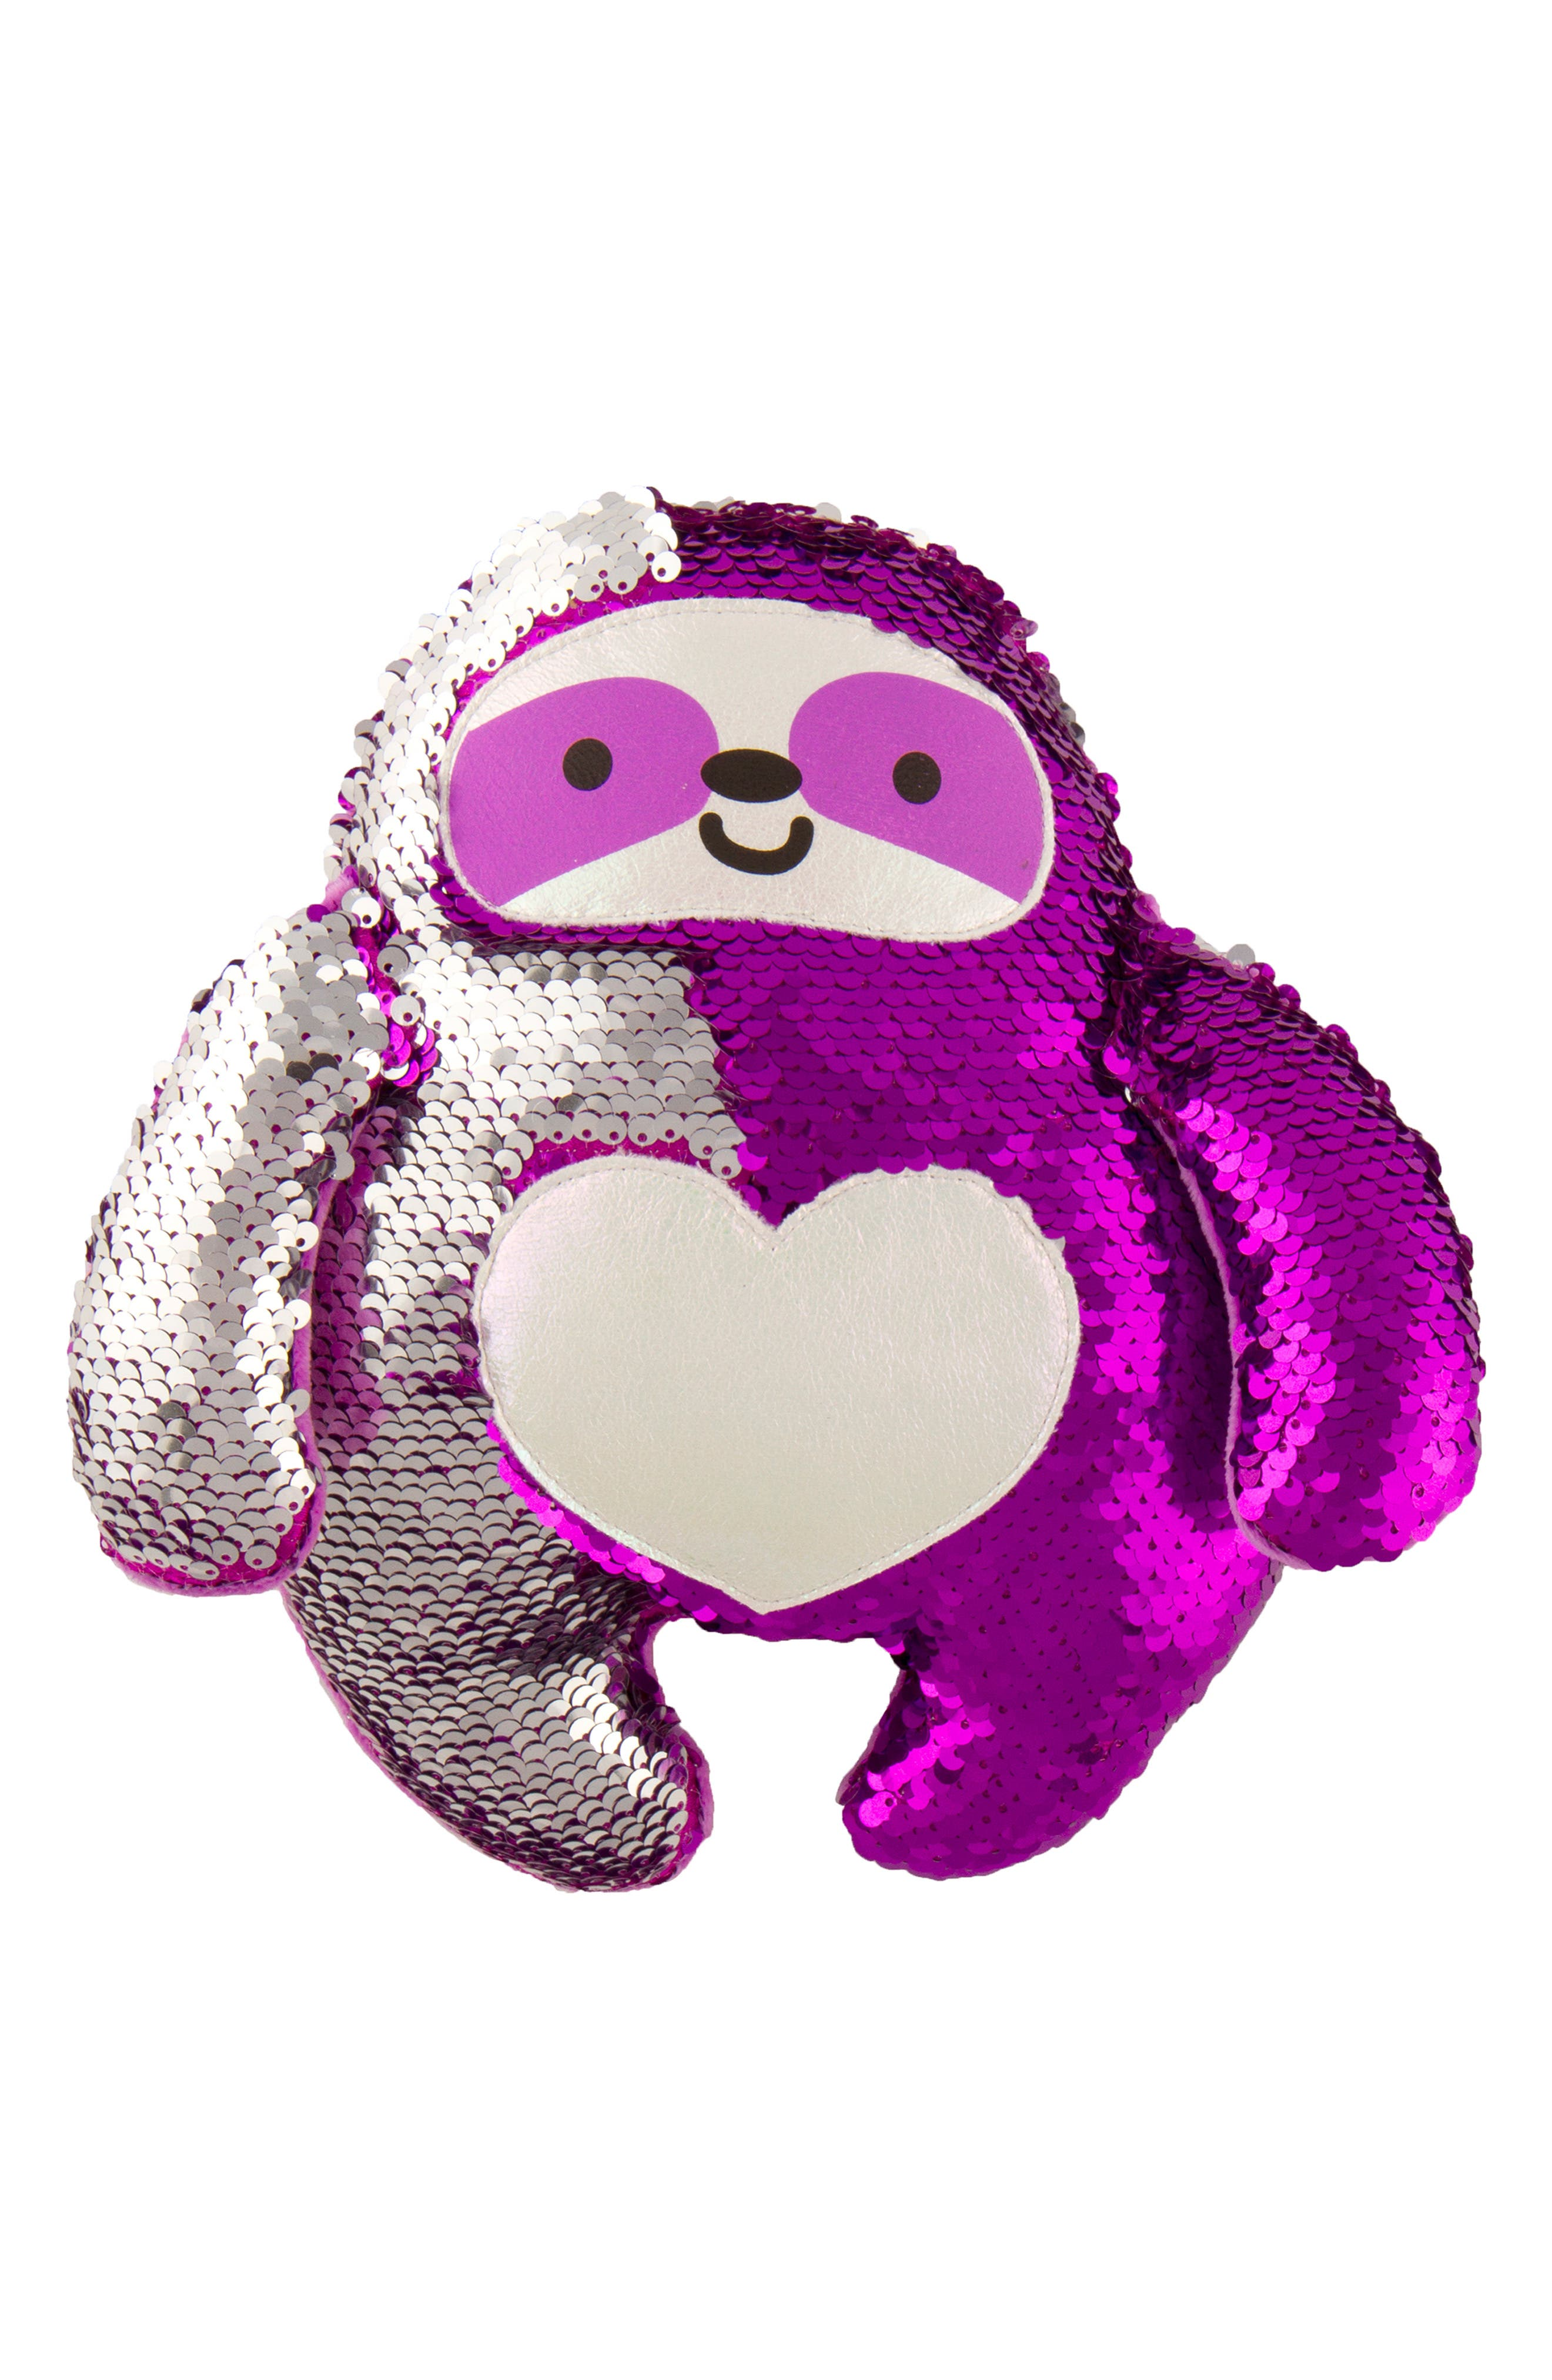 FASHION ANGELS,                             Magic Sequin Sloth Stuffed Animal,                             Alternate thumbnail 3, color,                             PURPLE